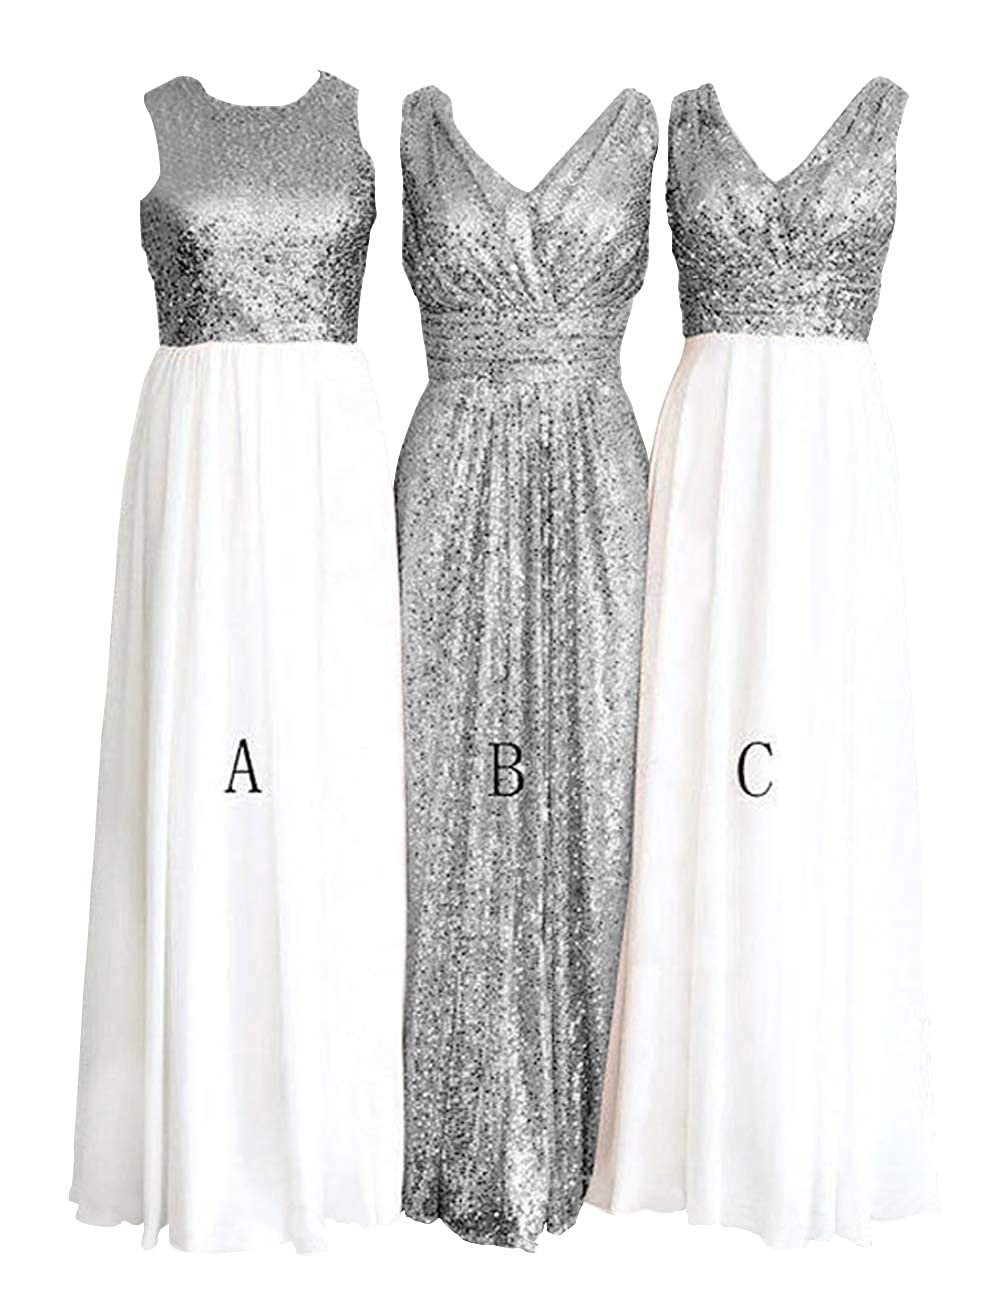 Cwhite and Silver H.S.D Women's pink gold Sequins Paillettes Long Bridesmaid Party Prom Dress